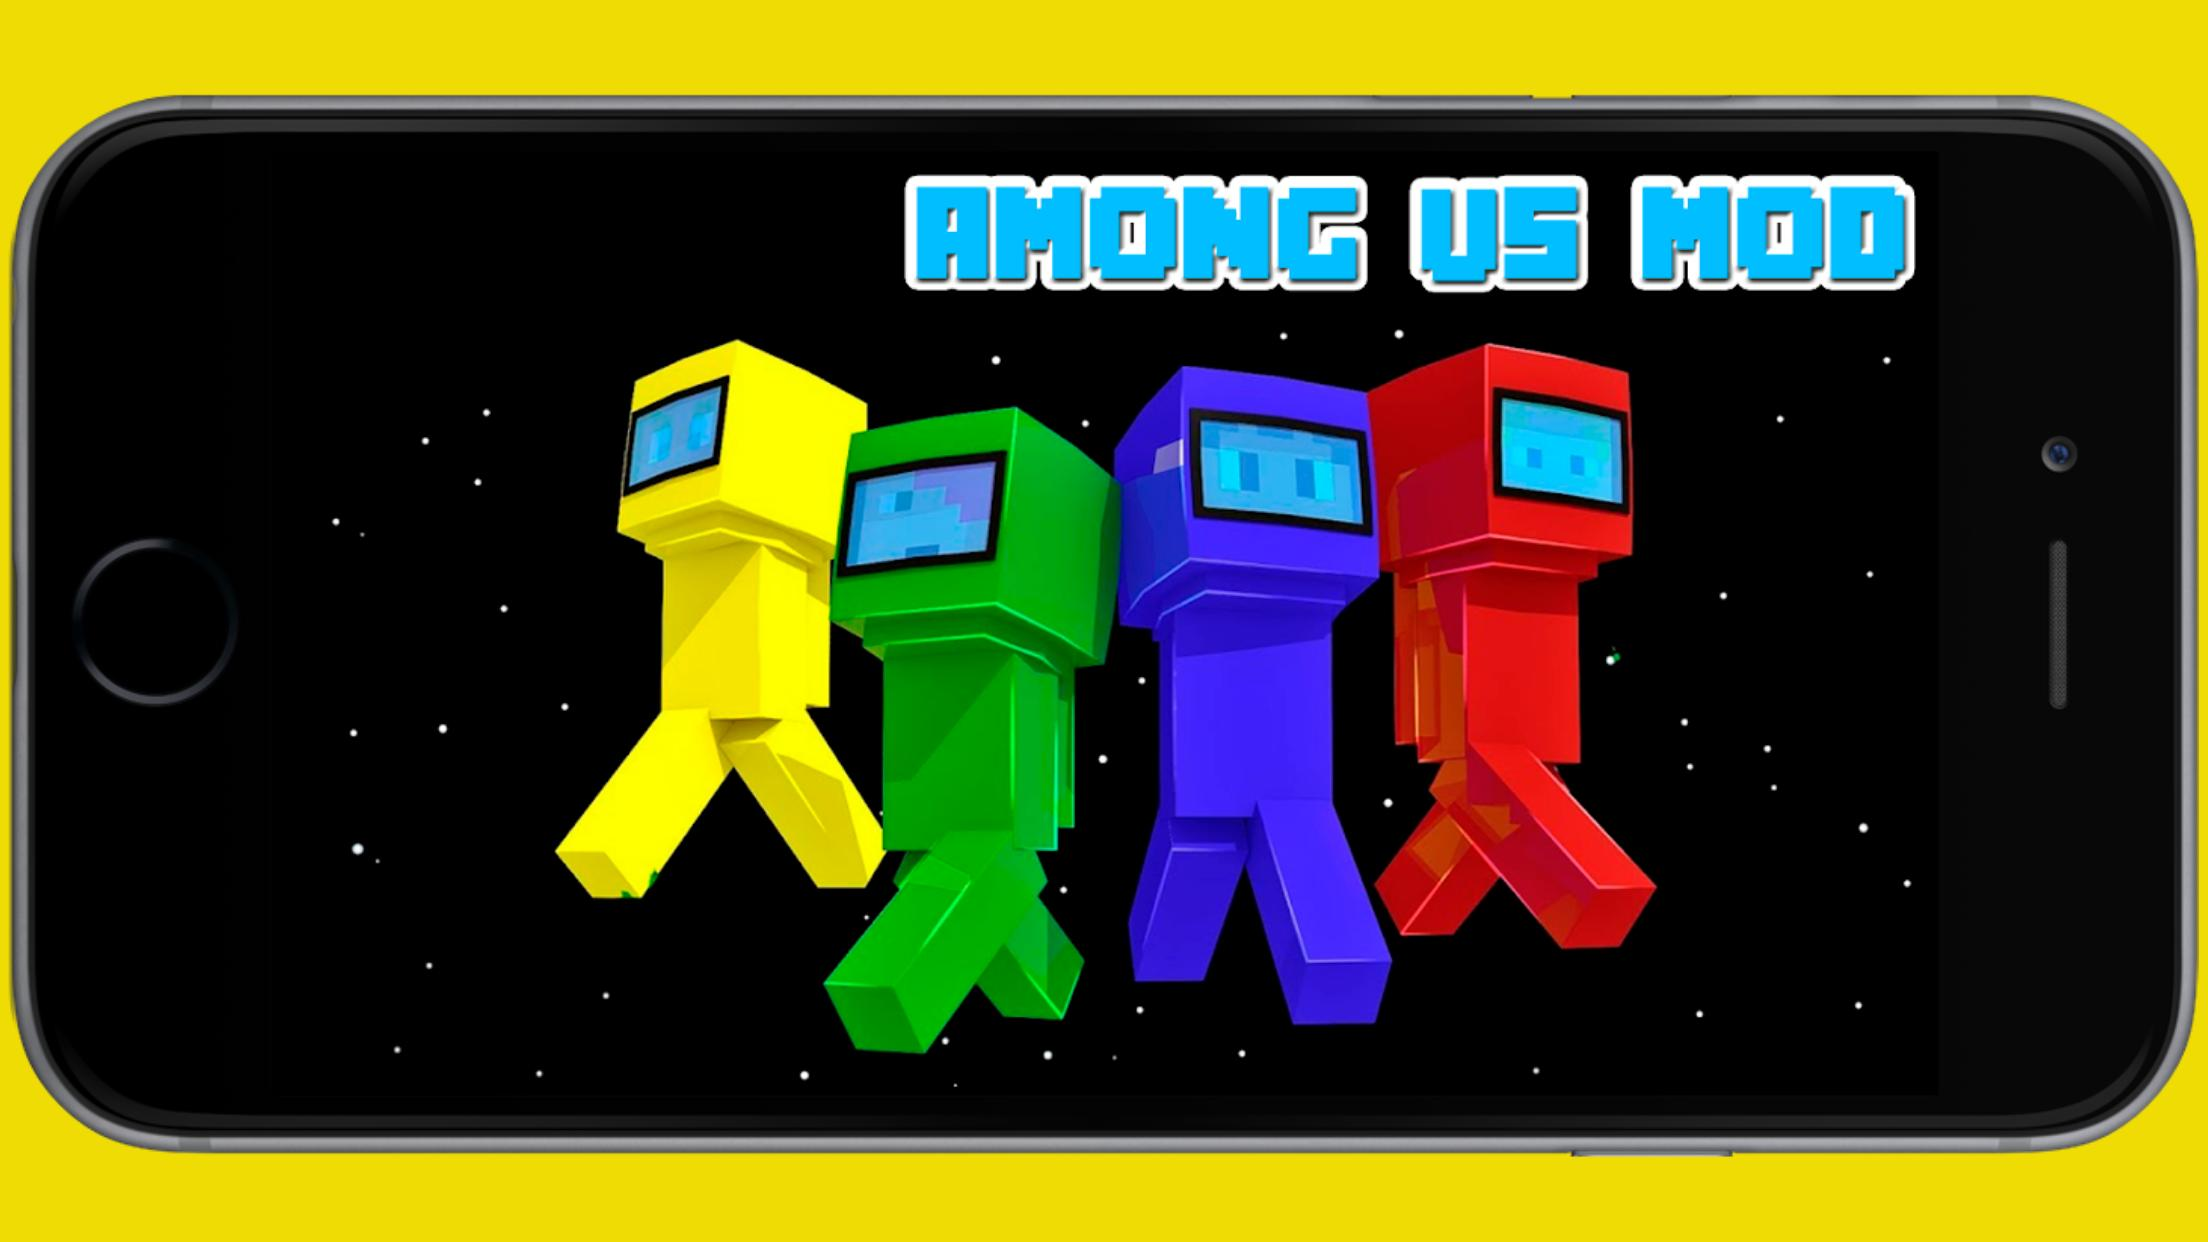 New Mod Among Us in Minecraft 11 for Android - APK Download